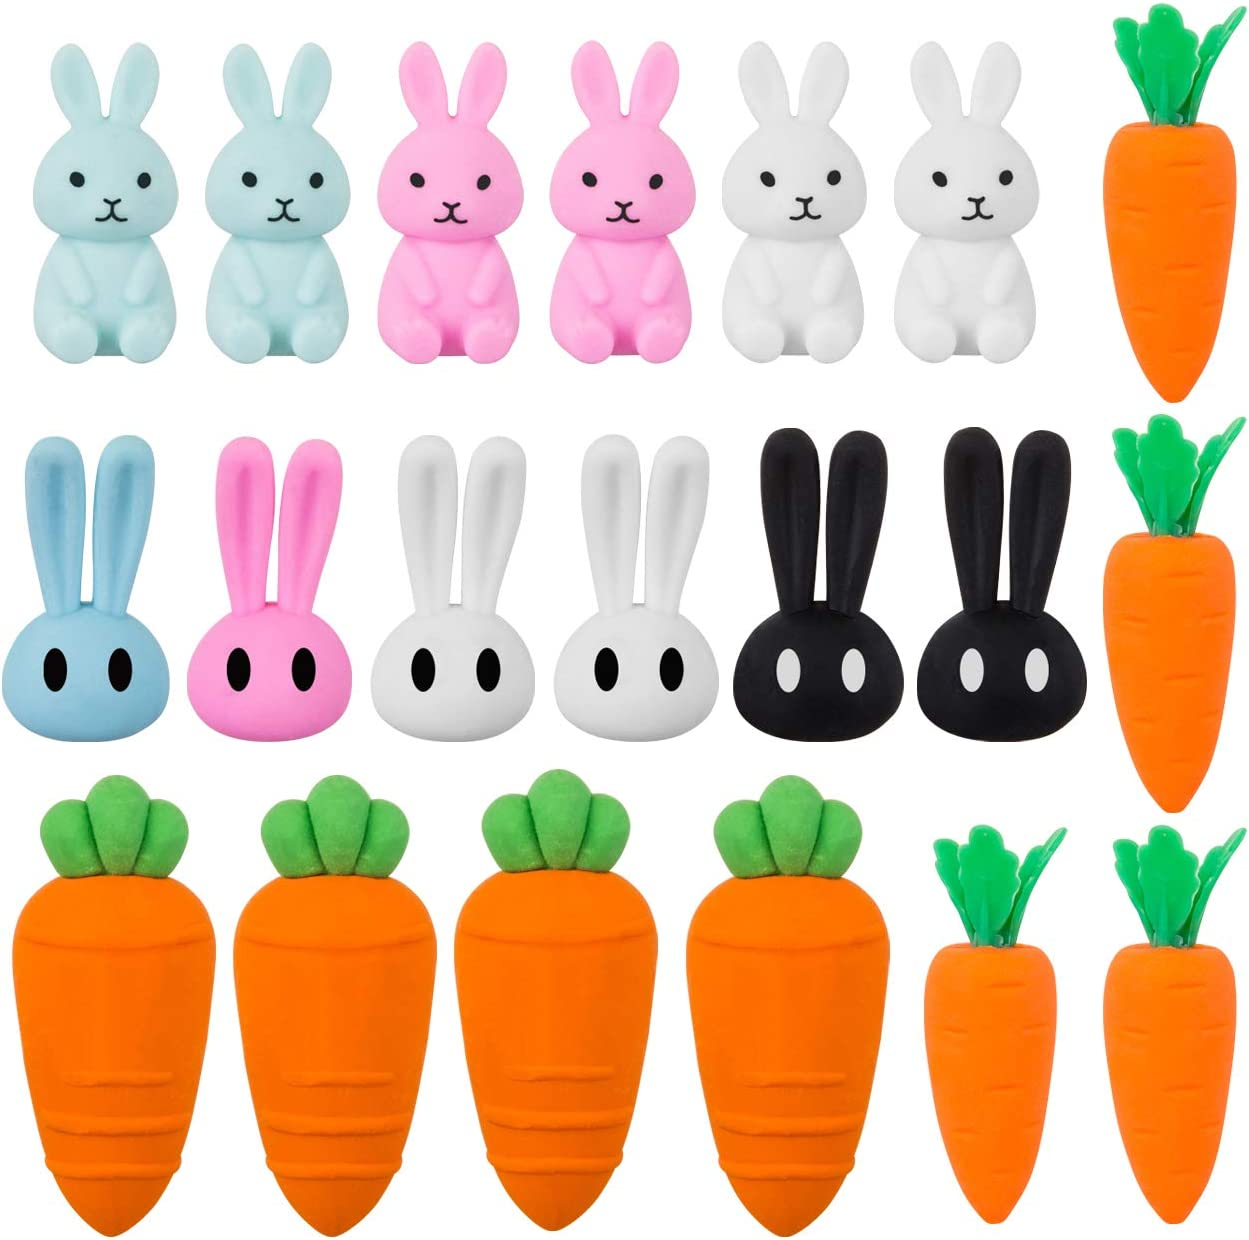 Kesoto Easter Eraser Assortment Easter Rabbit Eraser and Cute Carrot Eraser Novelty Easter Erasers for Party Favors 20 Pieces Homework Rewards Gift Filling and Art Supplies